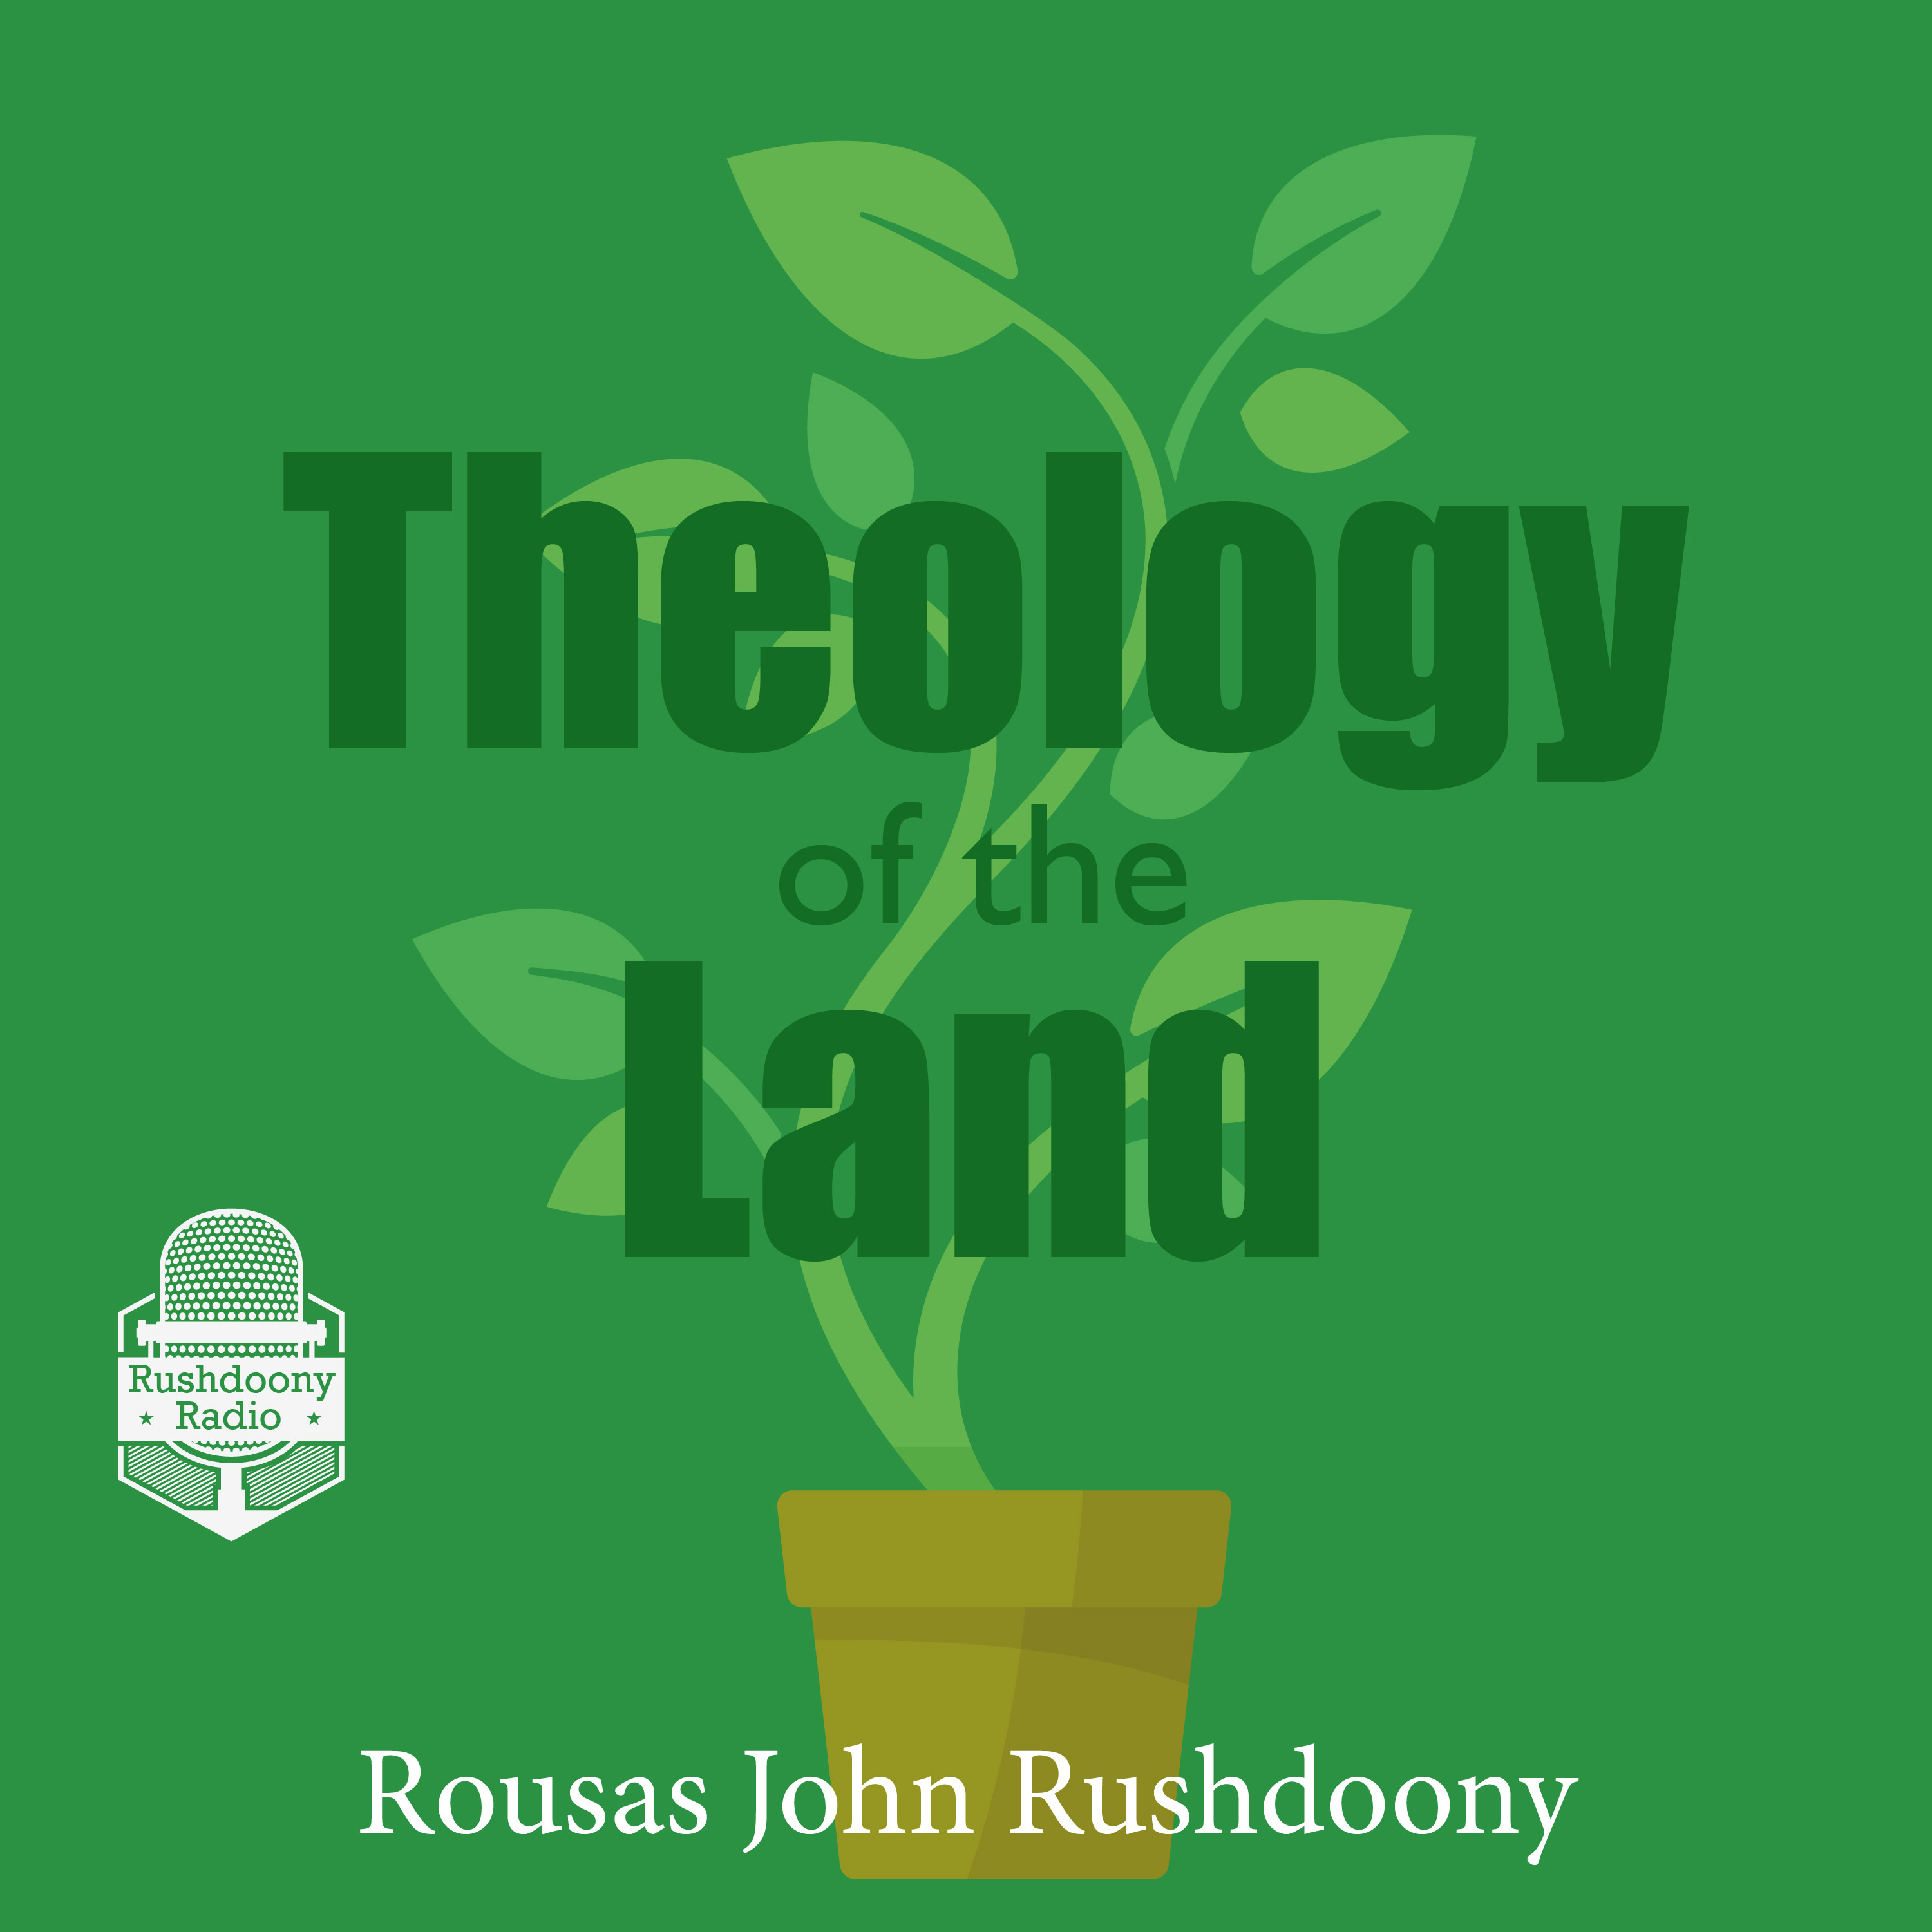 Theology of the Land